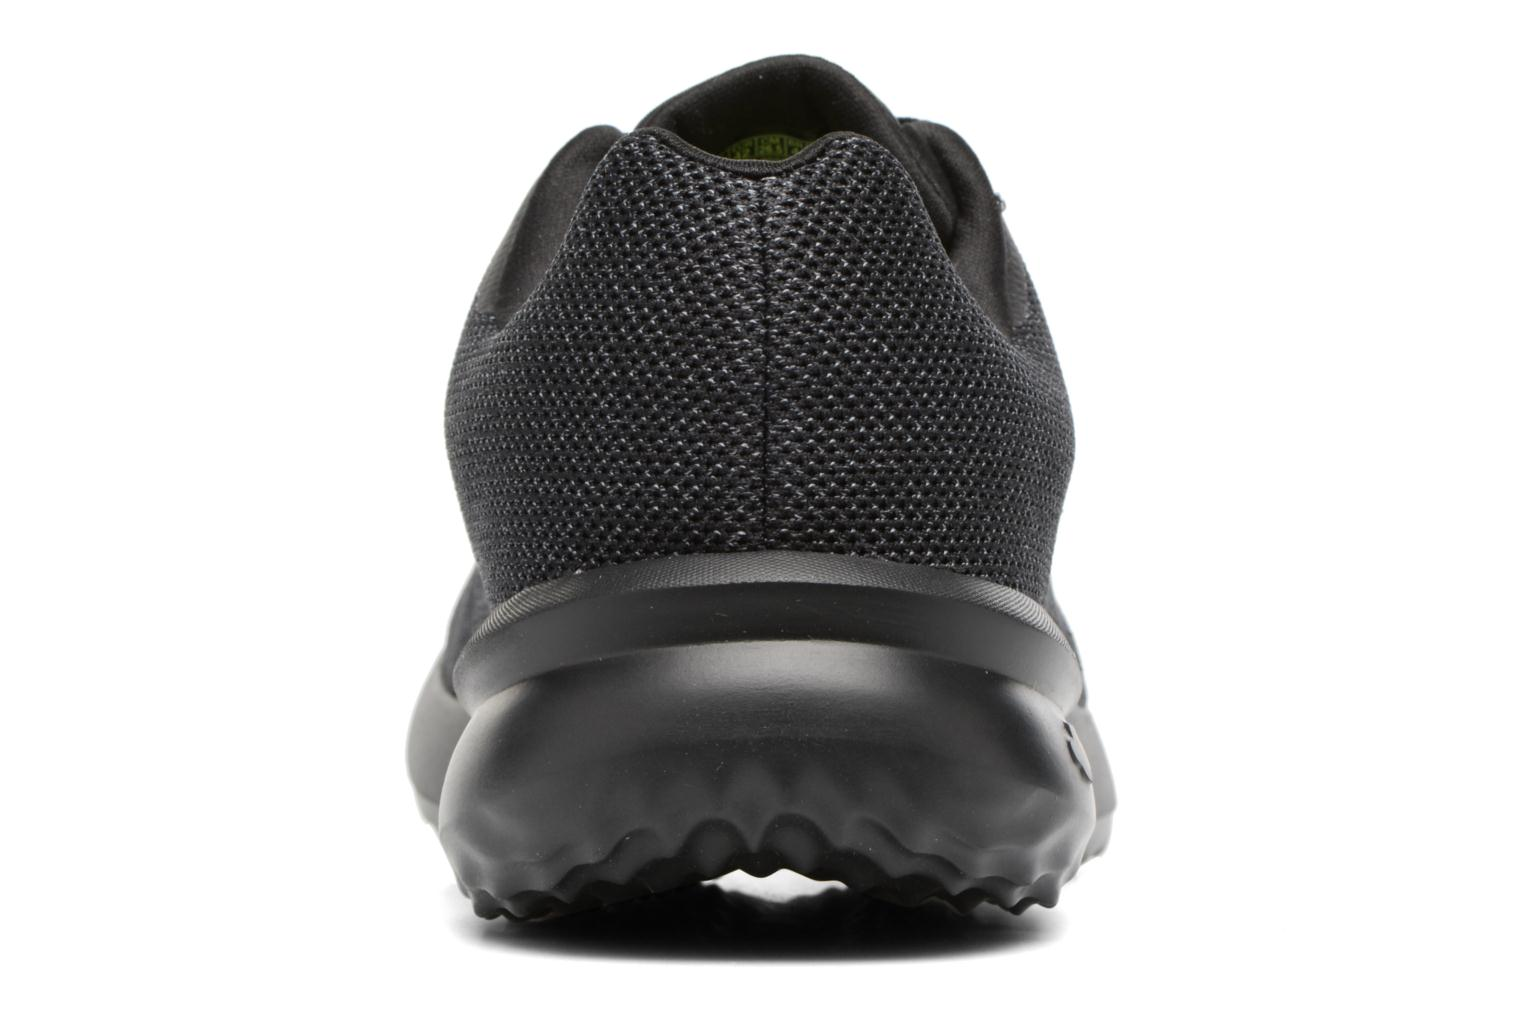 Zapatillas de deporte Skechers On-the-go City 3.0 Negro vista lateral derecha